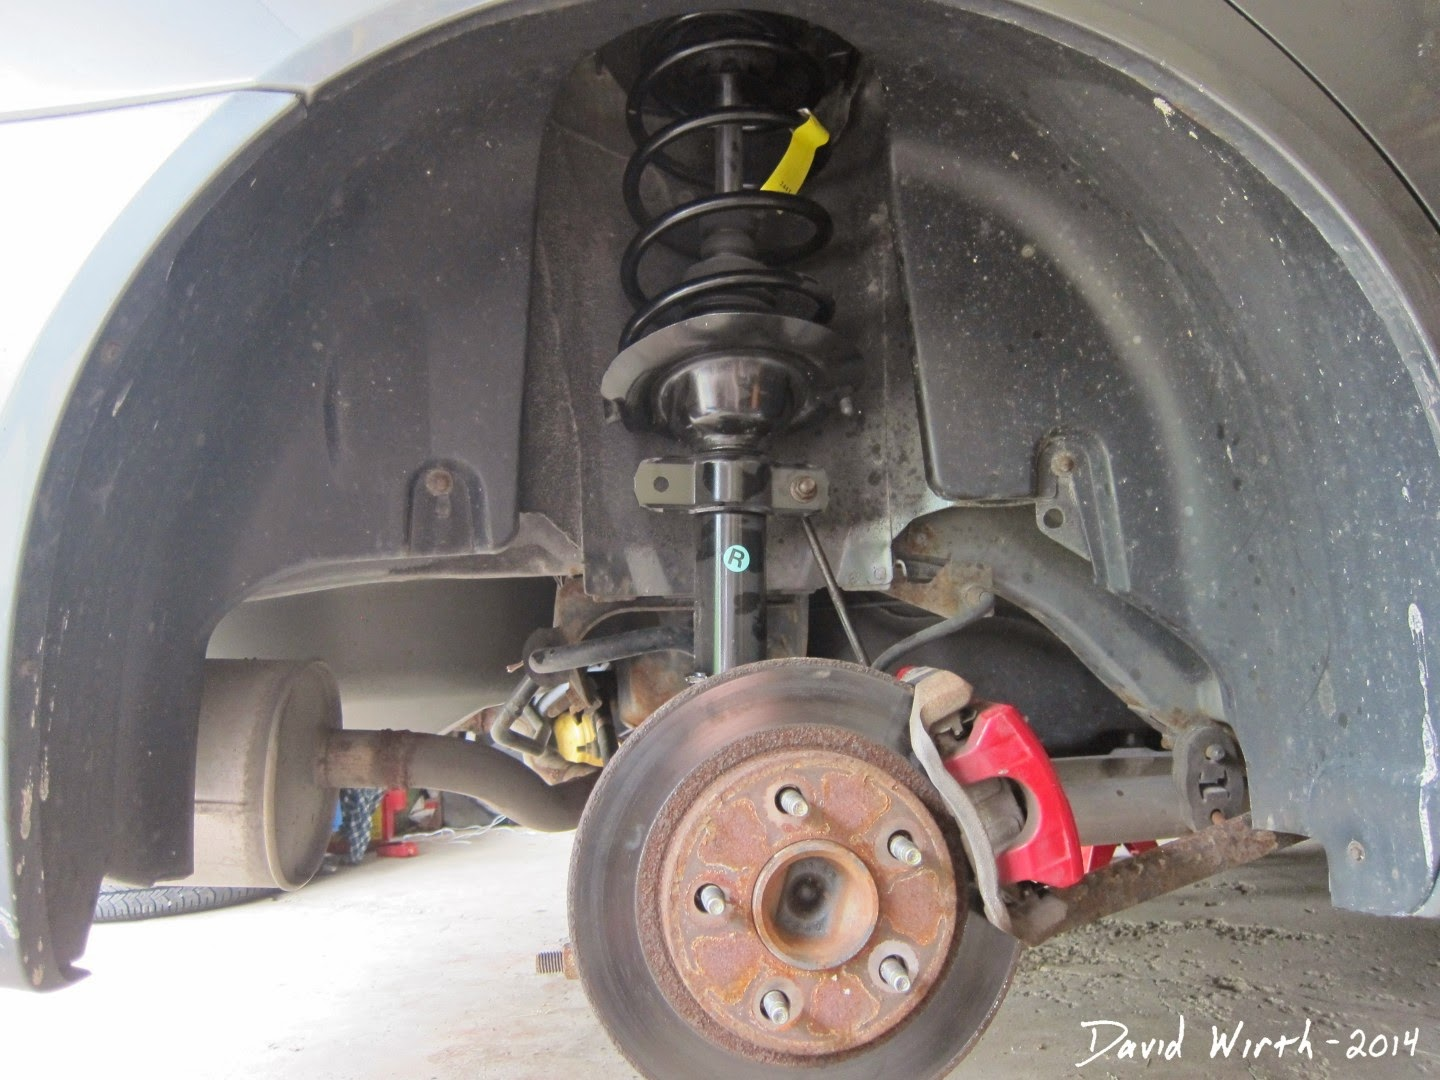 install new struts, pontiac grand prix, rear monroe struts, shocks